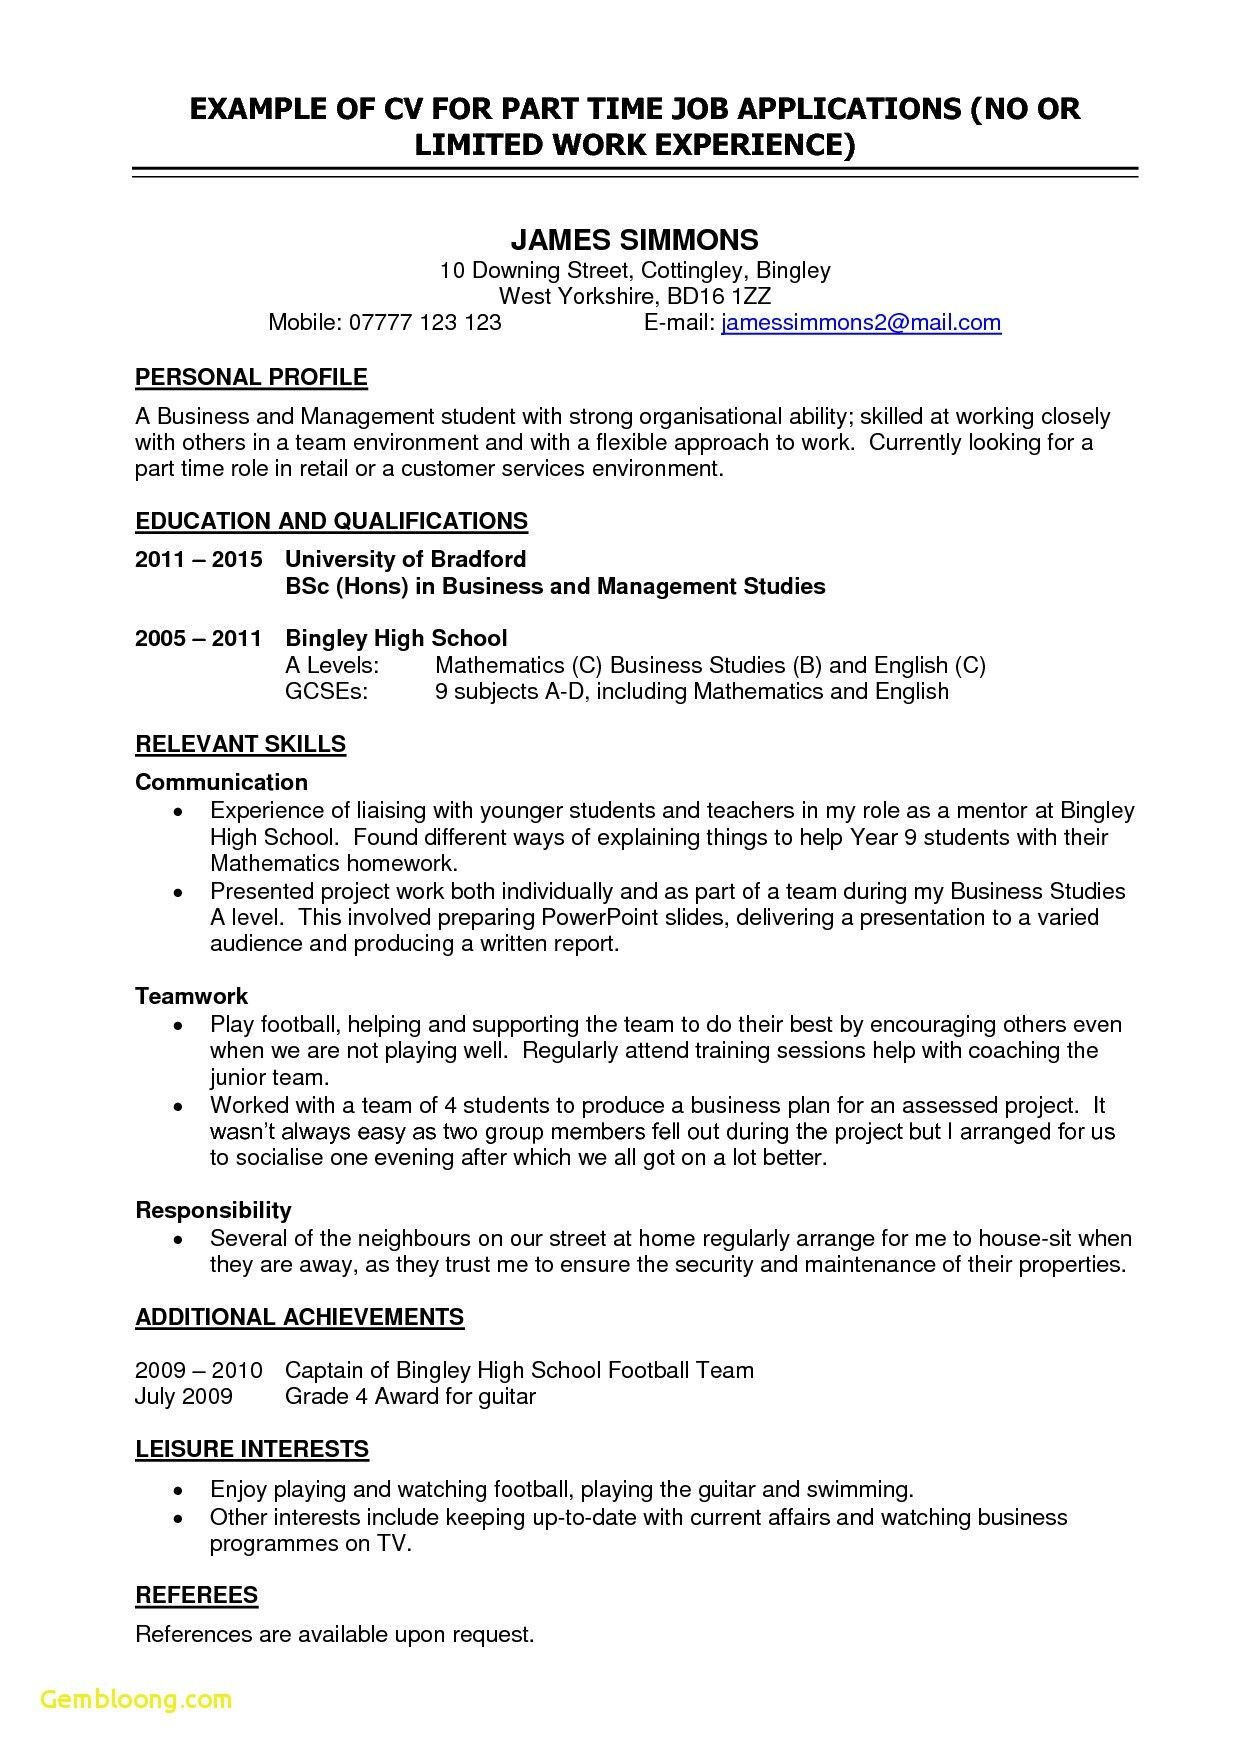 75 Inspiring Photos Of Resume Examples For Students With No Work